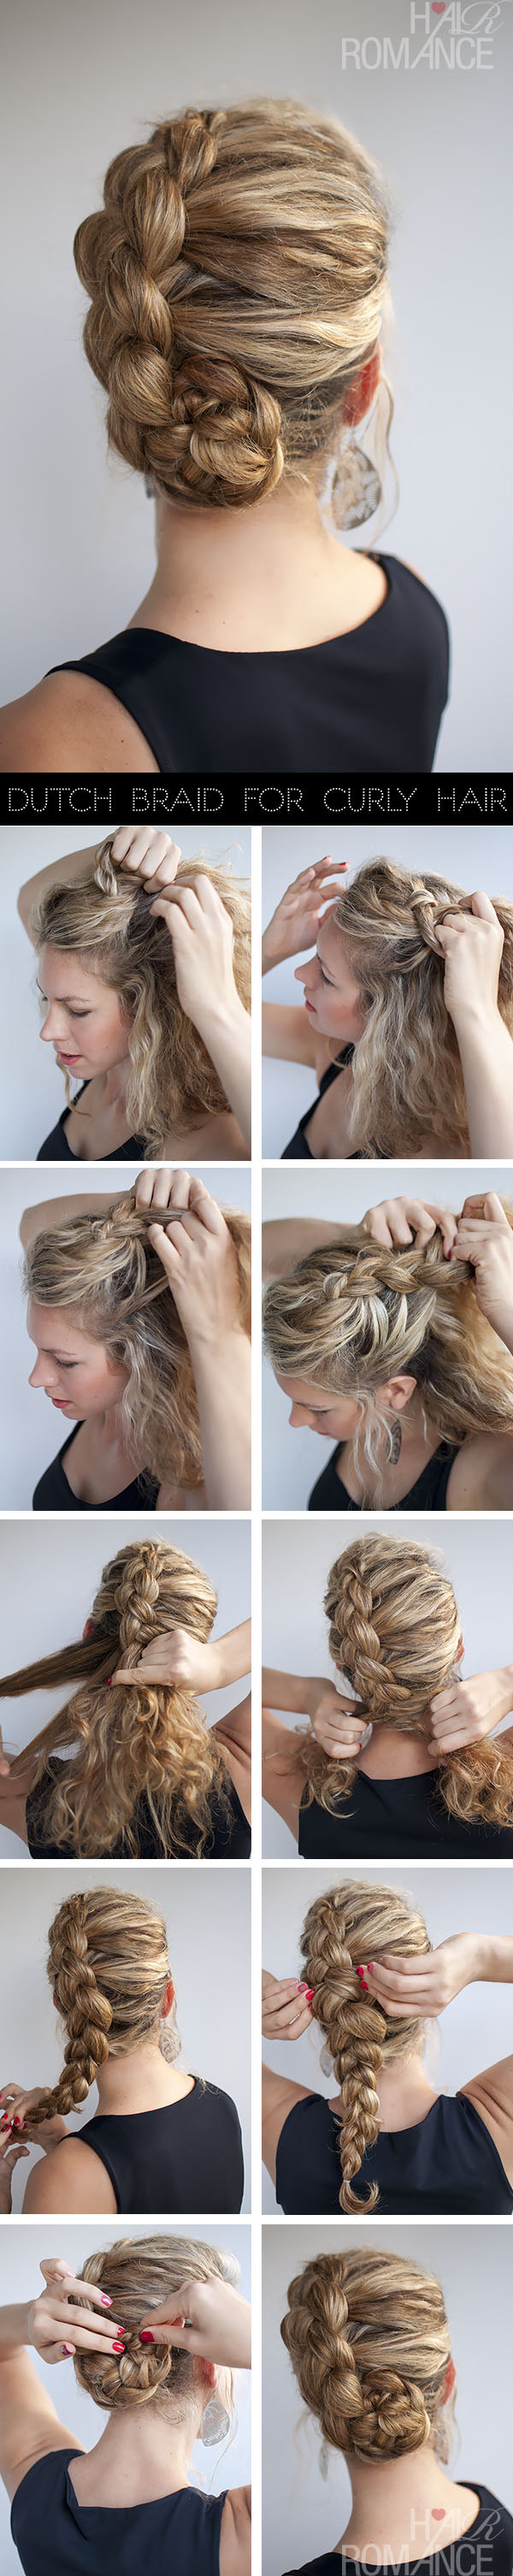 Hairstyles for Long Hair Step by Step-7